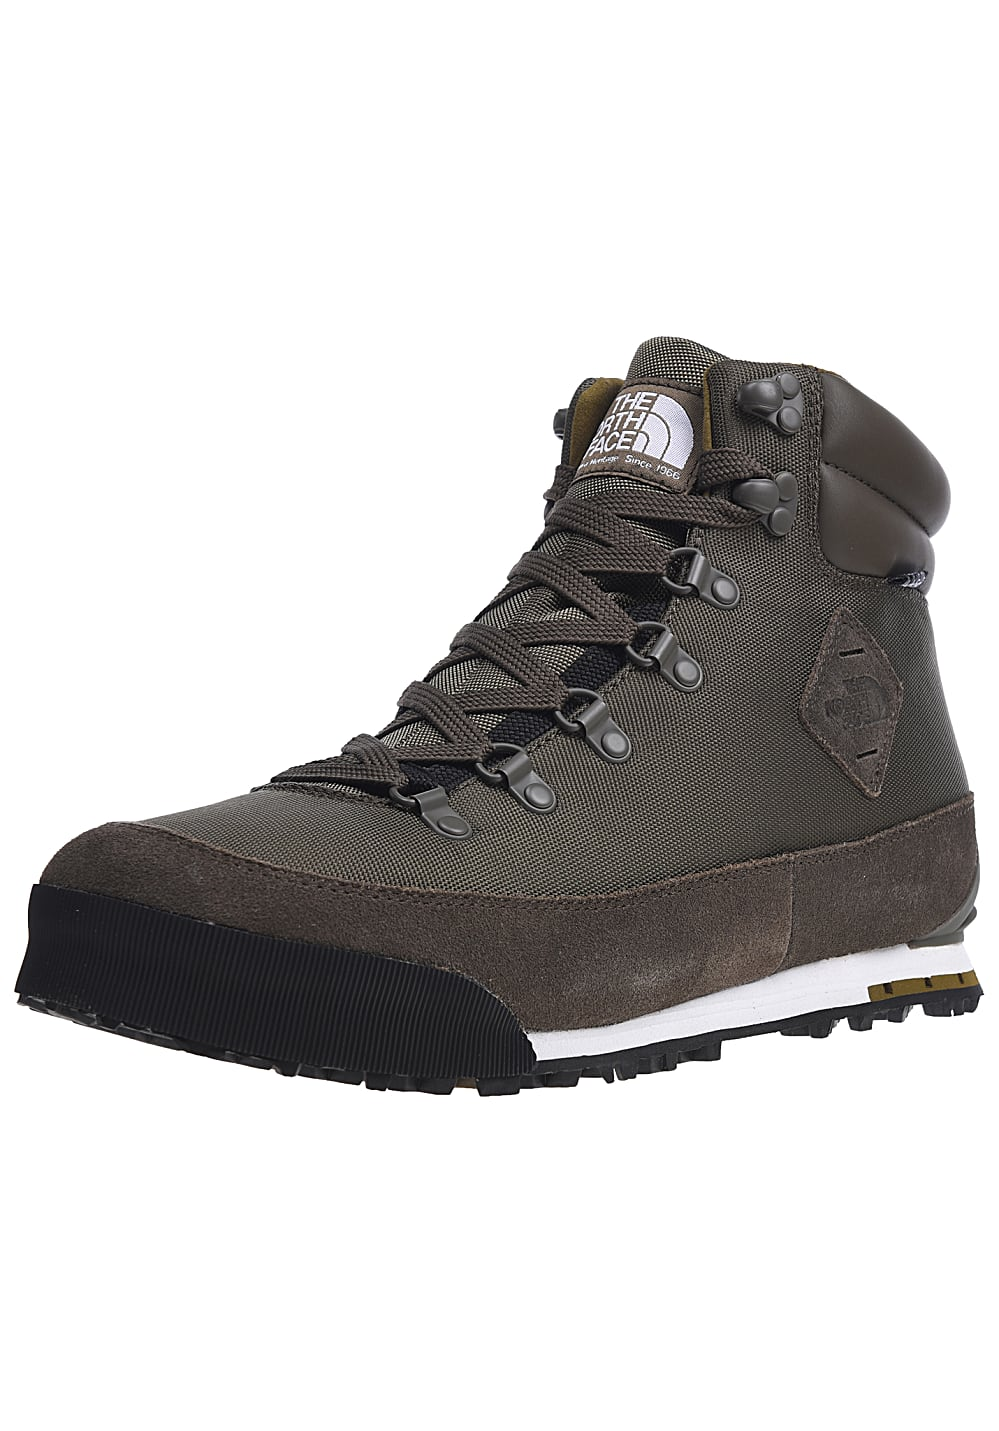 637c7db3f1 ... THE NORTH FACE Back-2-Berkeley Nl - Hiking Shoes for Men - Green. Back  to Overview. 1; 2; 3; 4; 5; 6. Previous